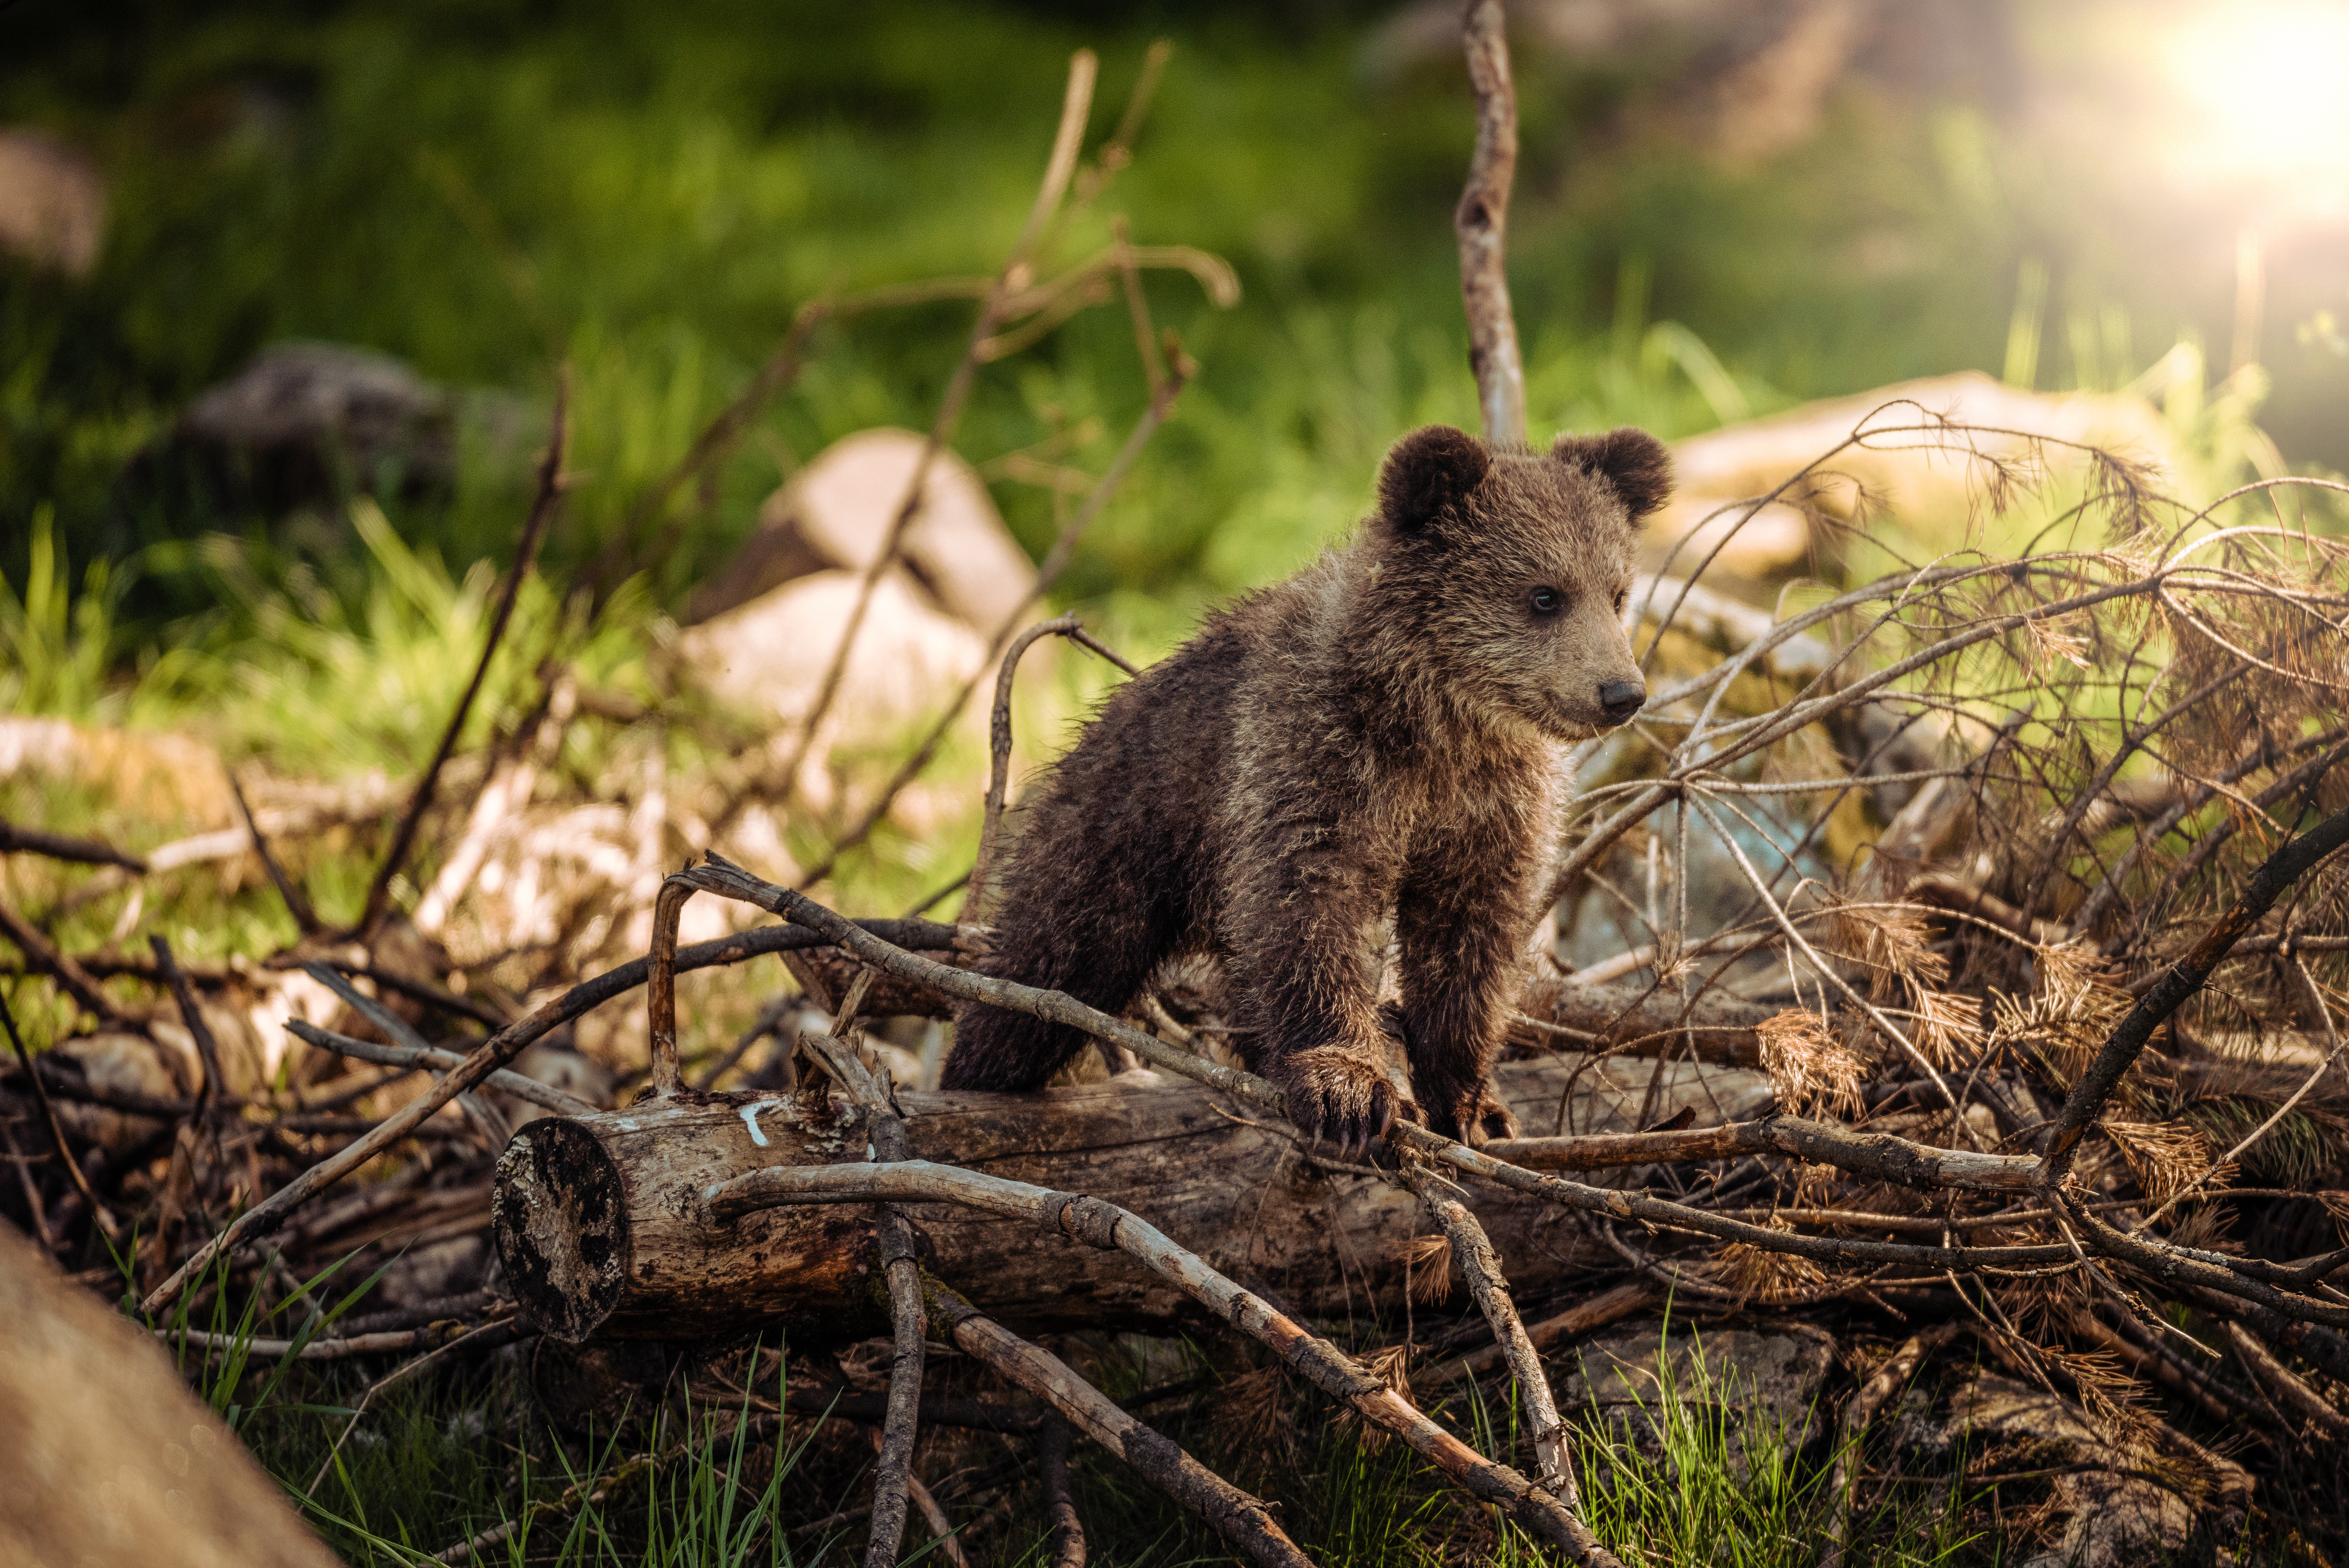 128674 Screensavers and Wallpapers Young for phone. Download Animals, Teddy Bear, Young, Branches, Bear, Stroll, Joey pictures for free